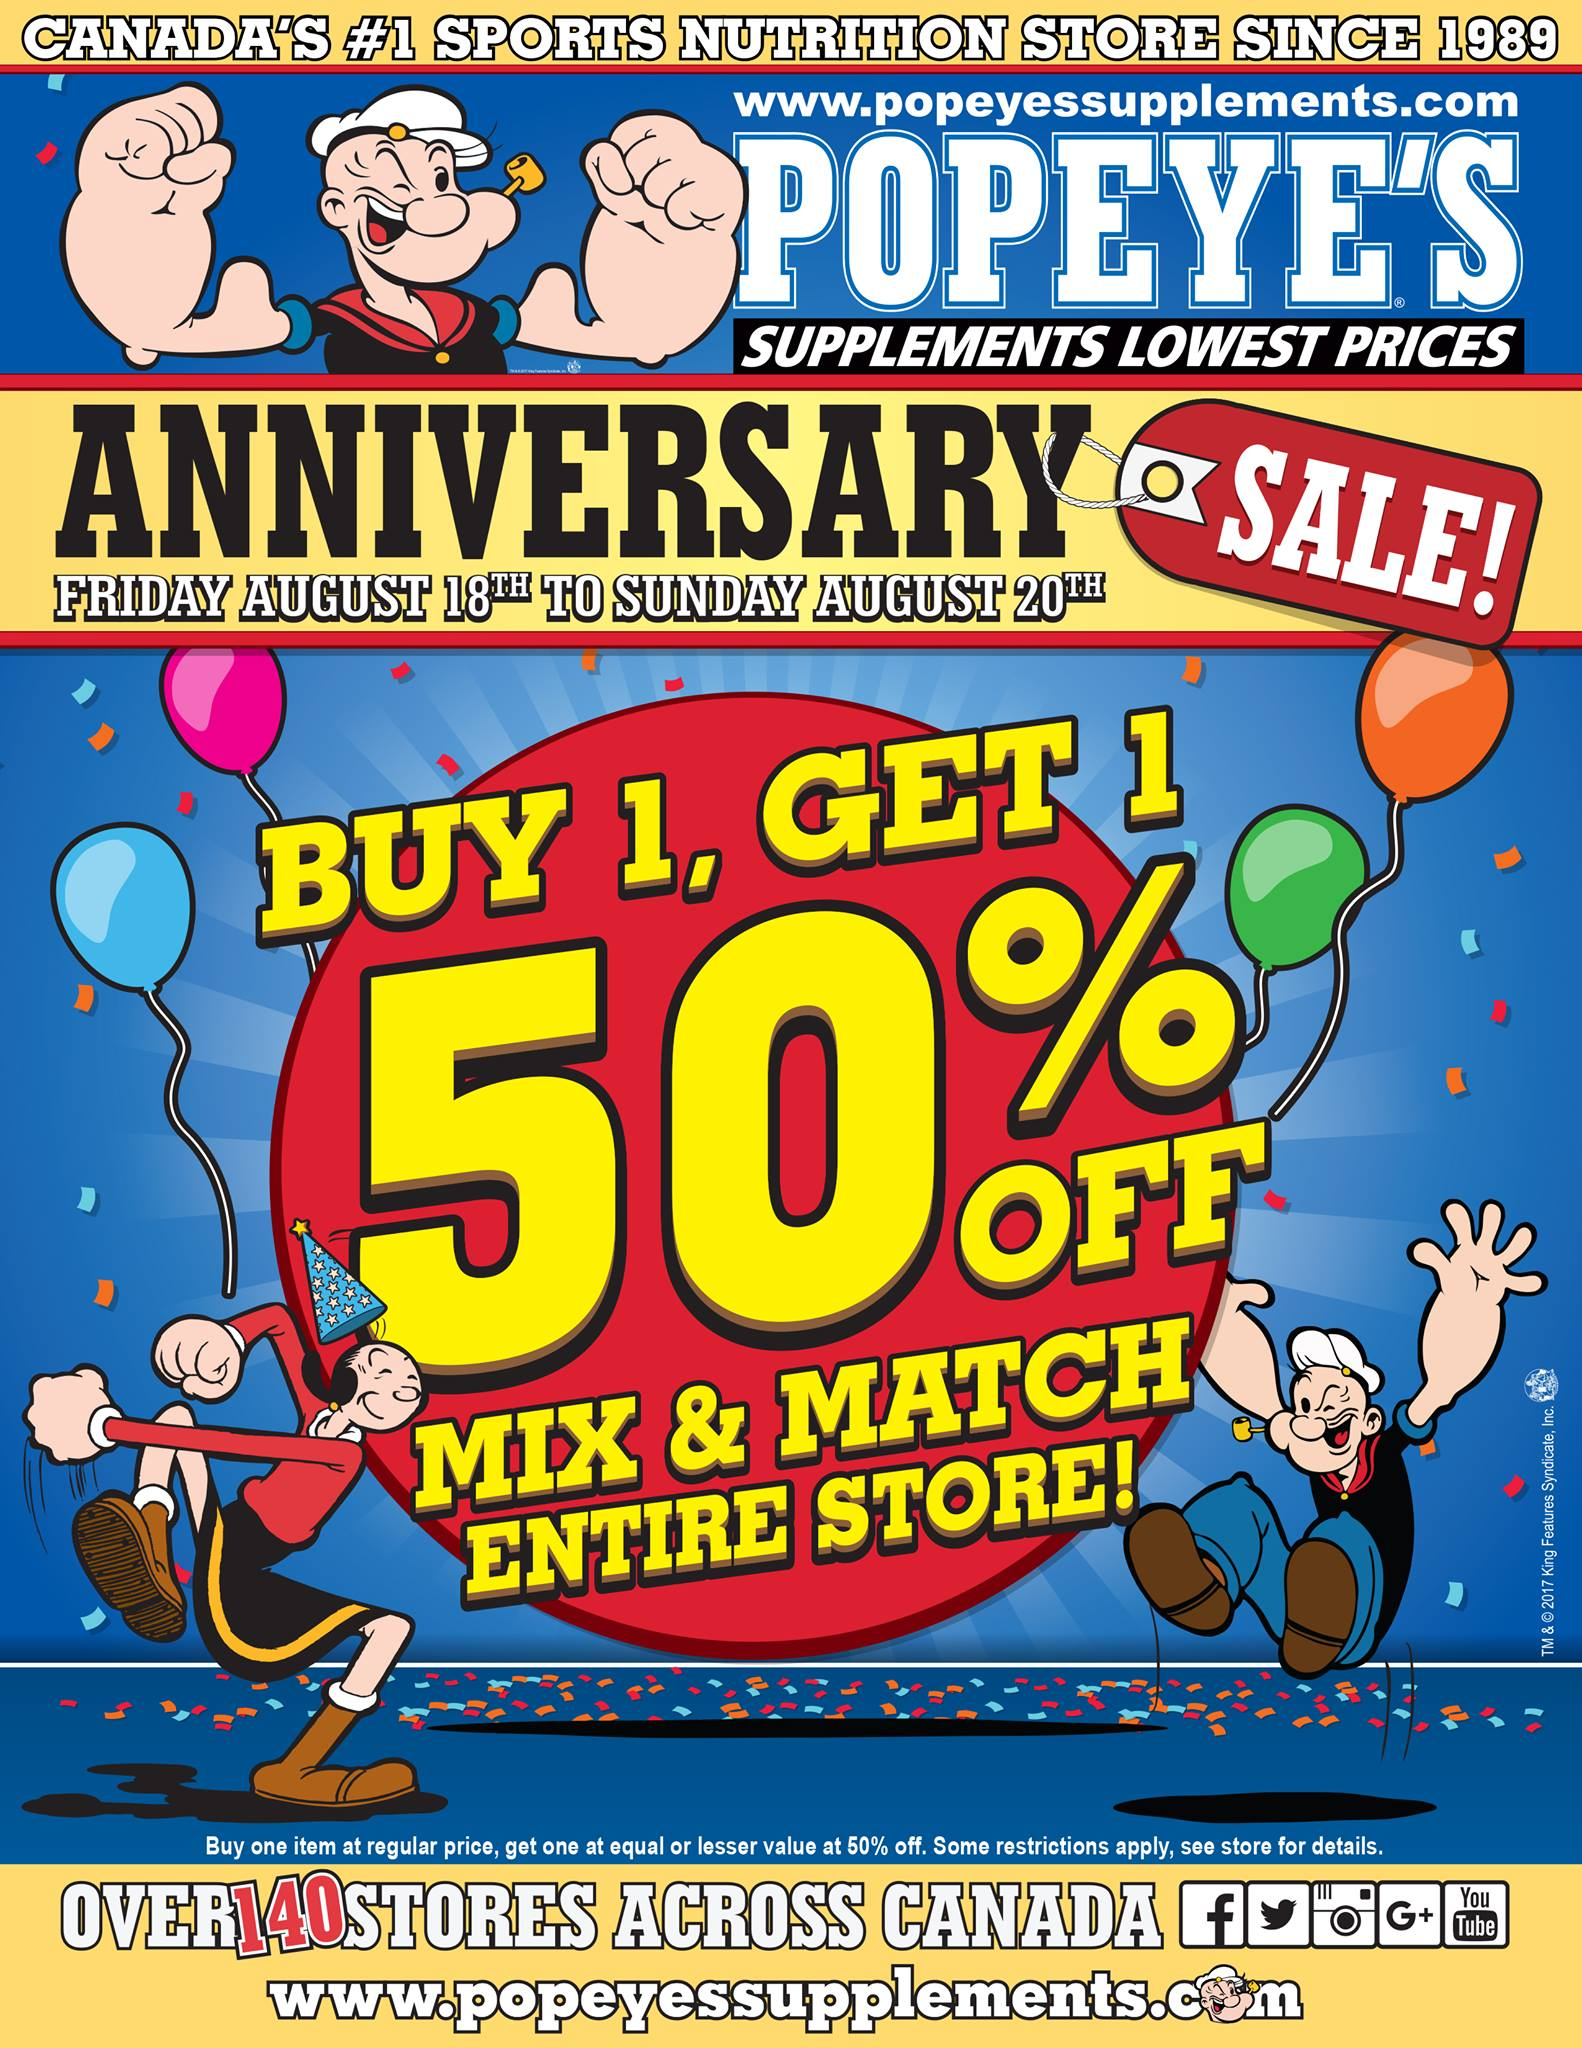 Popeyes Supplements Canada Anniversary Sale Buy 1 Get 1 50 off Entire Store  Canadian